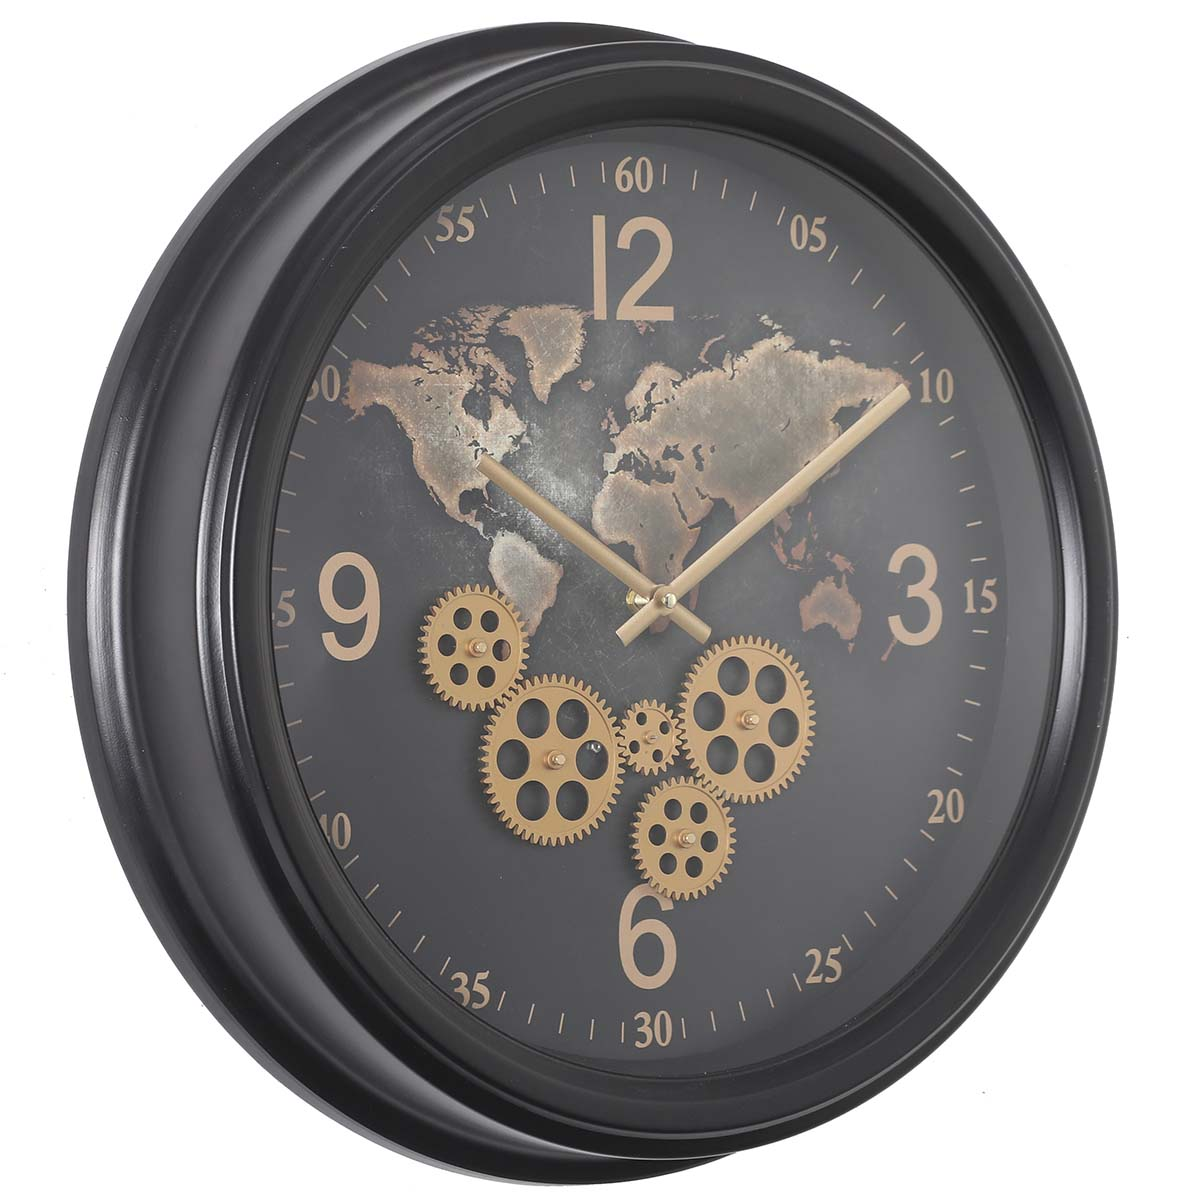 Chilli Decor Camile The World Black Metal Moving Gears Wall Clock 53cm TQ-Y713 1